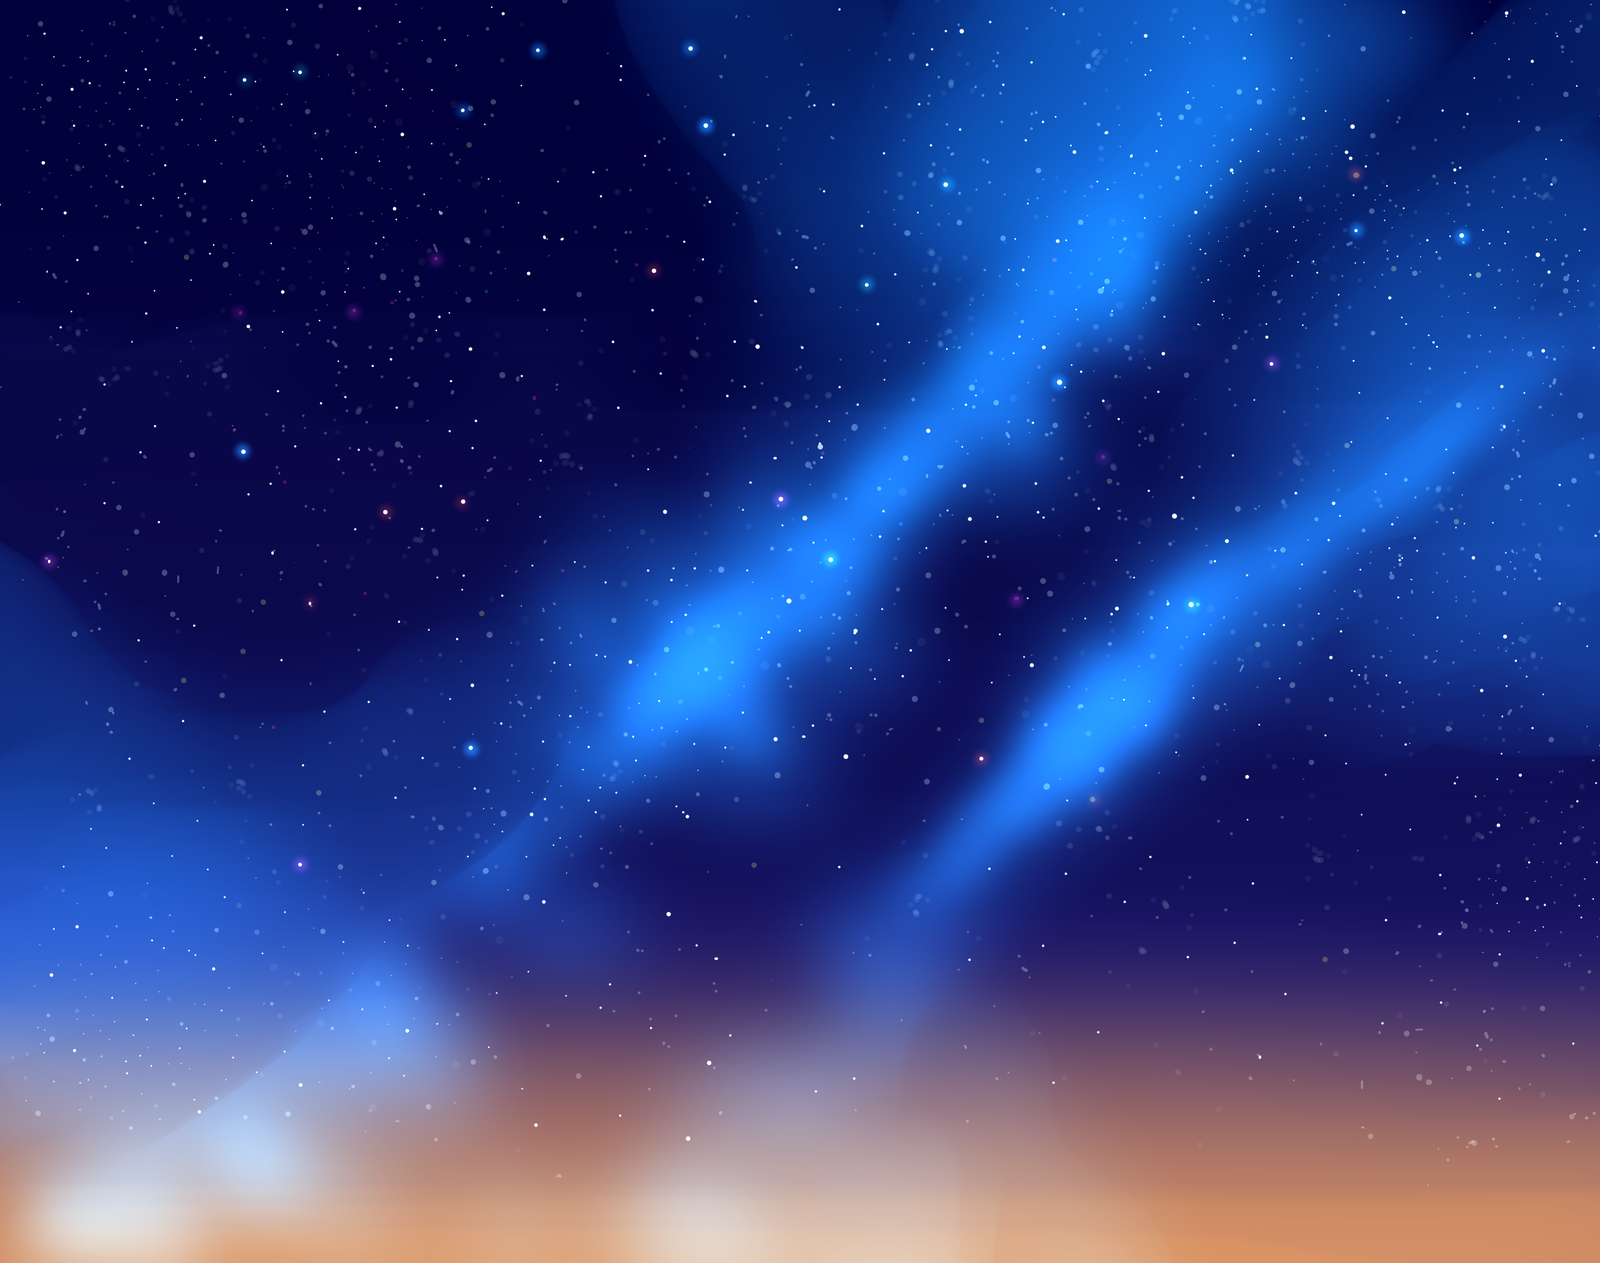 Starry Sky Background PNG - 151288